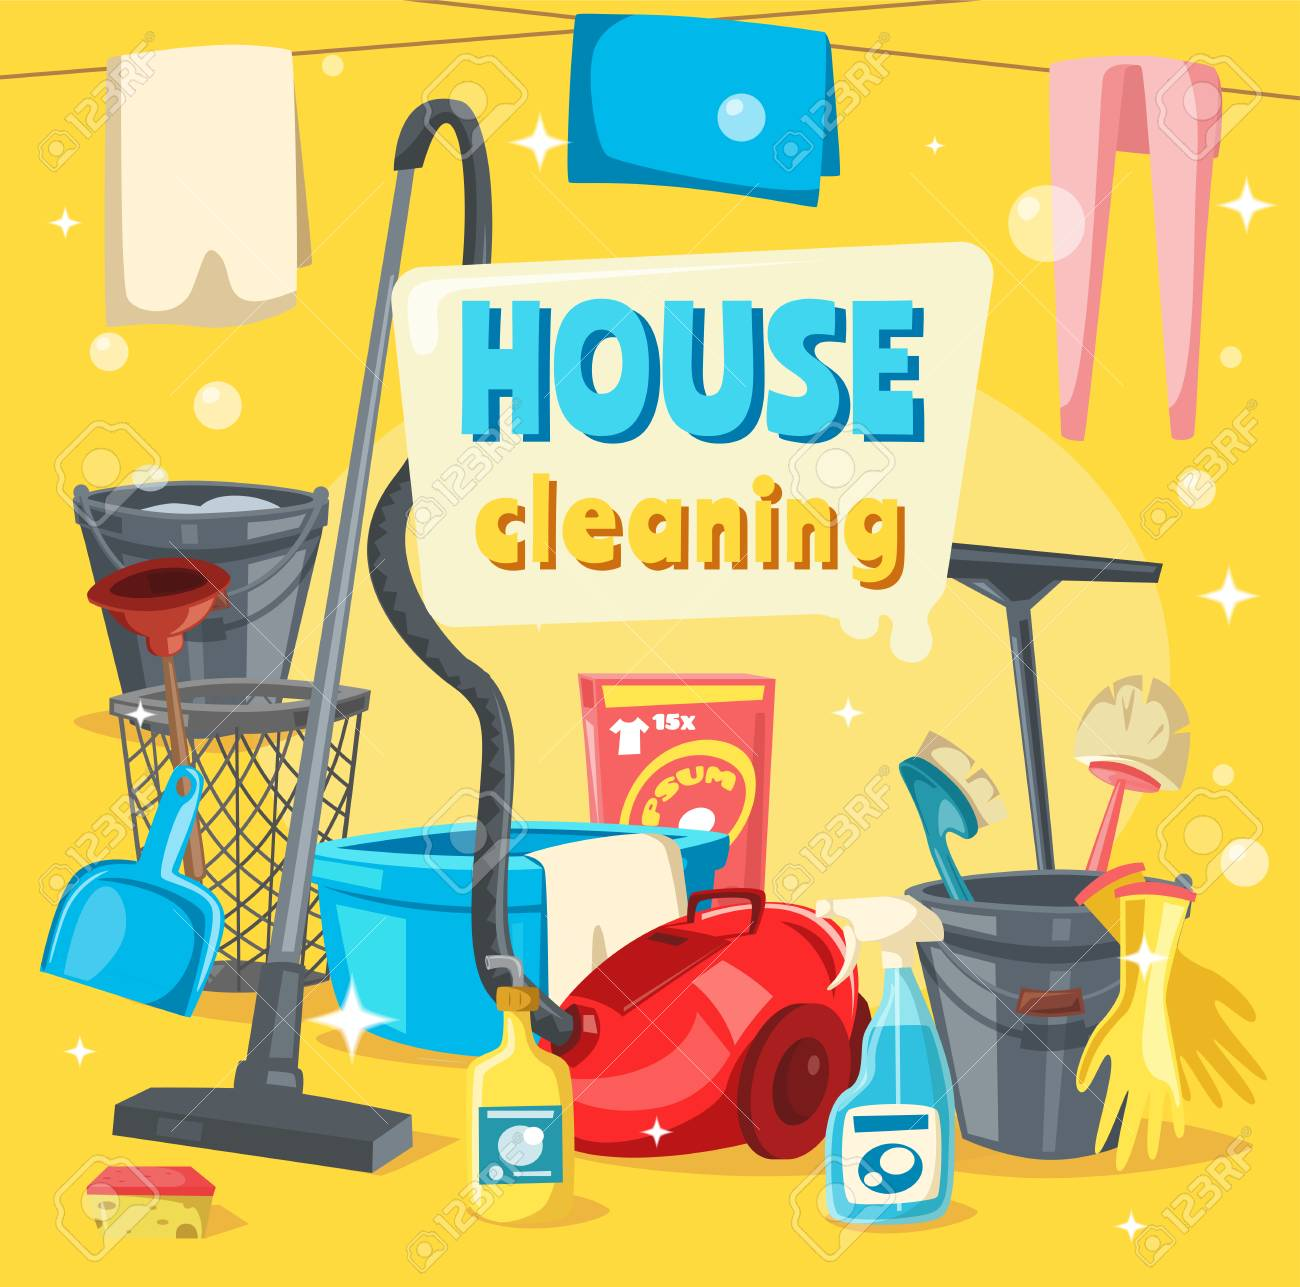 House Cleaning Services, Tools For Keeping Home Clean. Vector.. Royalty  Free Cliparts, Vectors, And Stock Illustration. Image 109761891.